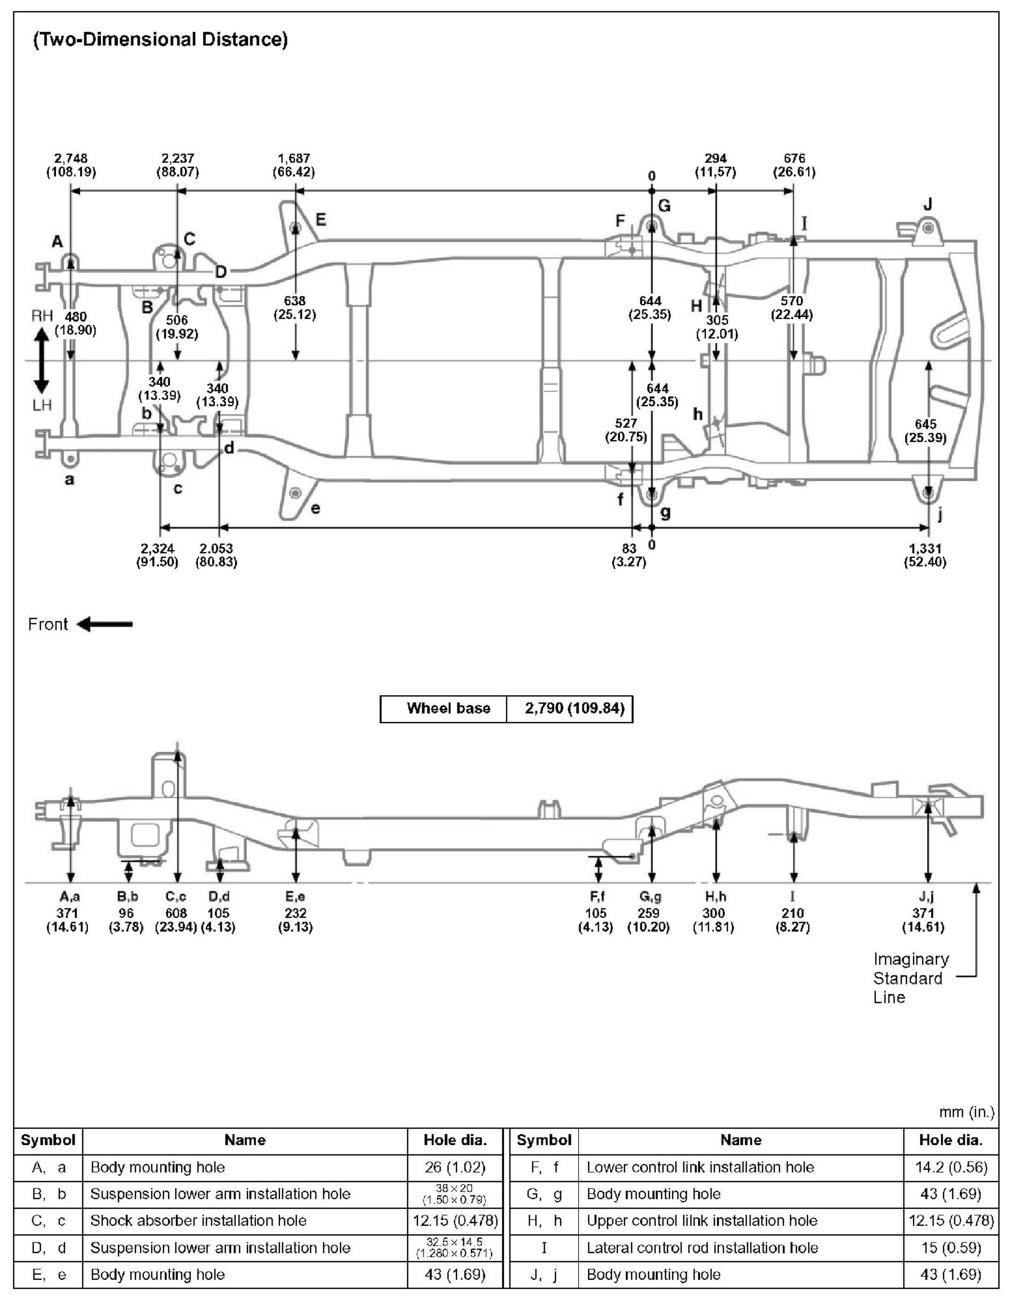 2002 Ford Ranger Frame Diagram Trusted Wiring Diagrams 1999 Transfer Case 2008 Schematic Free Vehicle U2022 Undercarriage